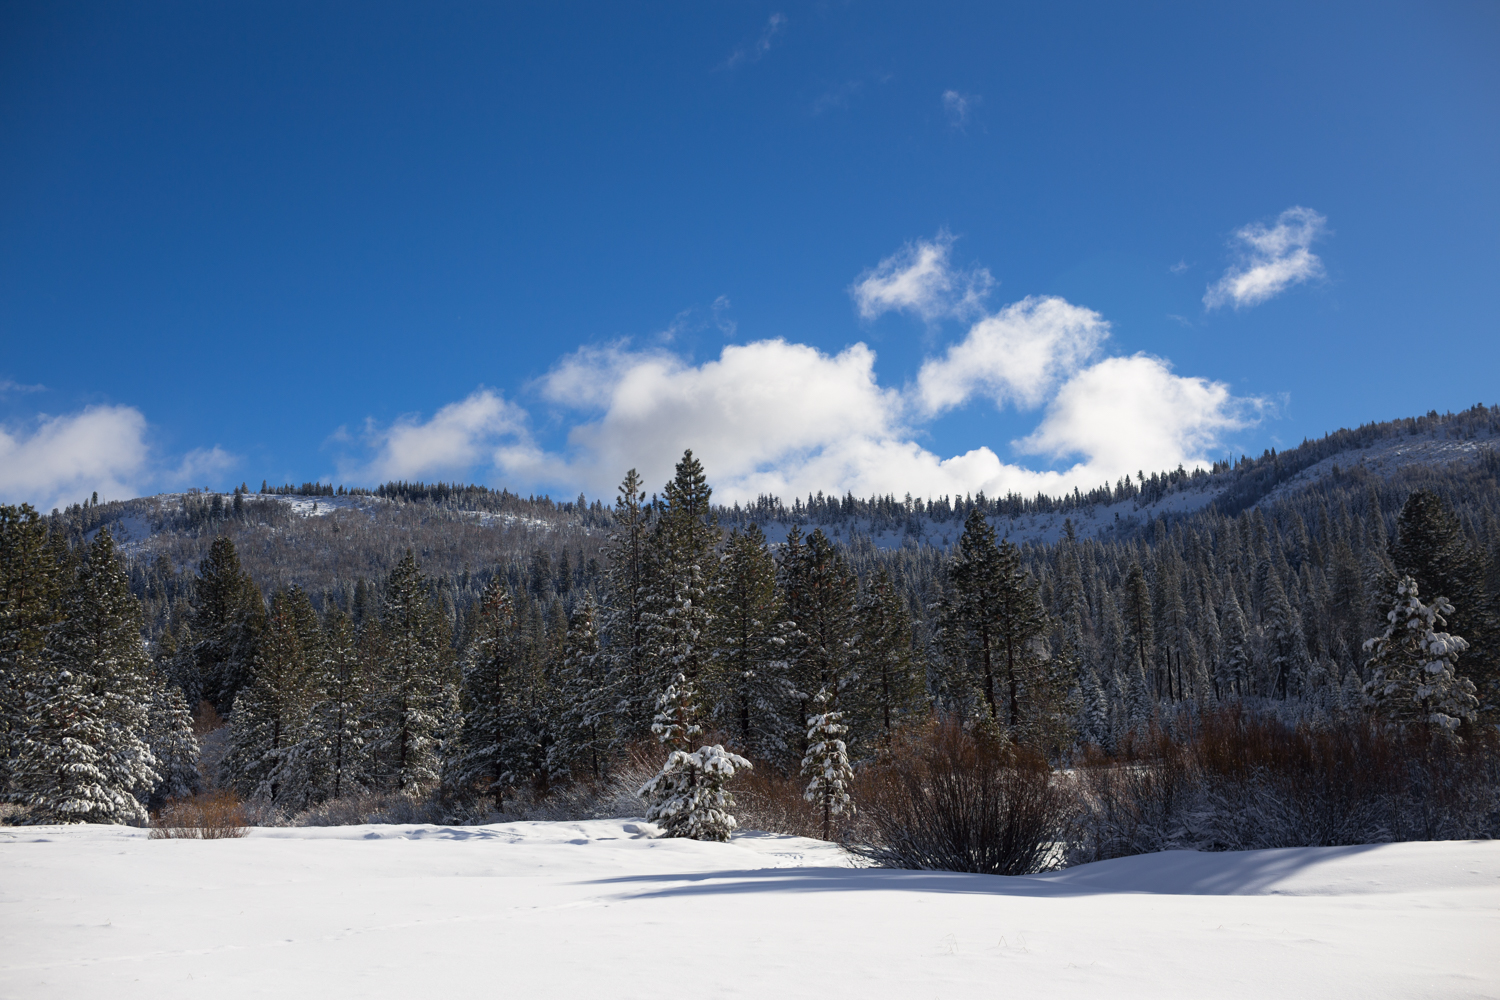 tahoe national forest snowshoeing bear valley nevada county